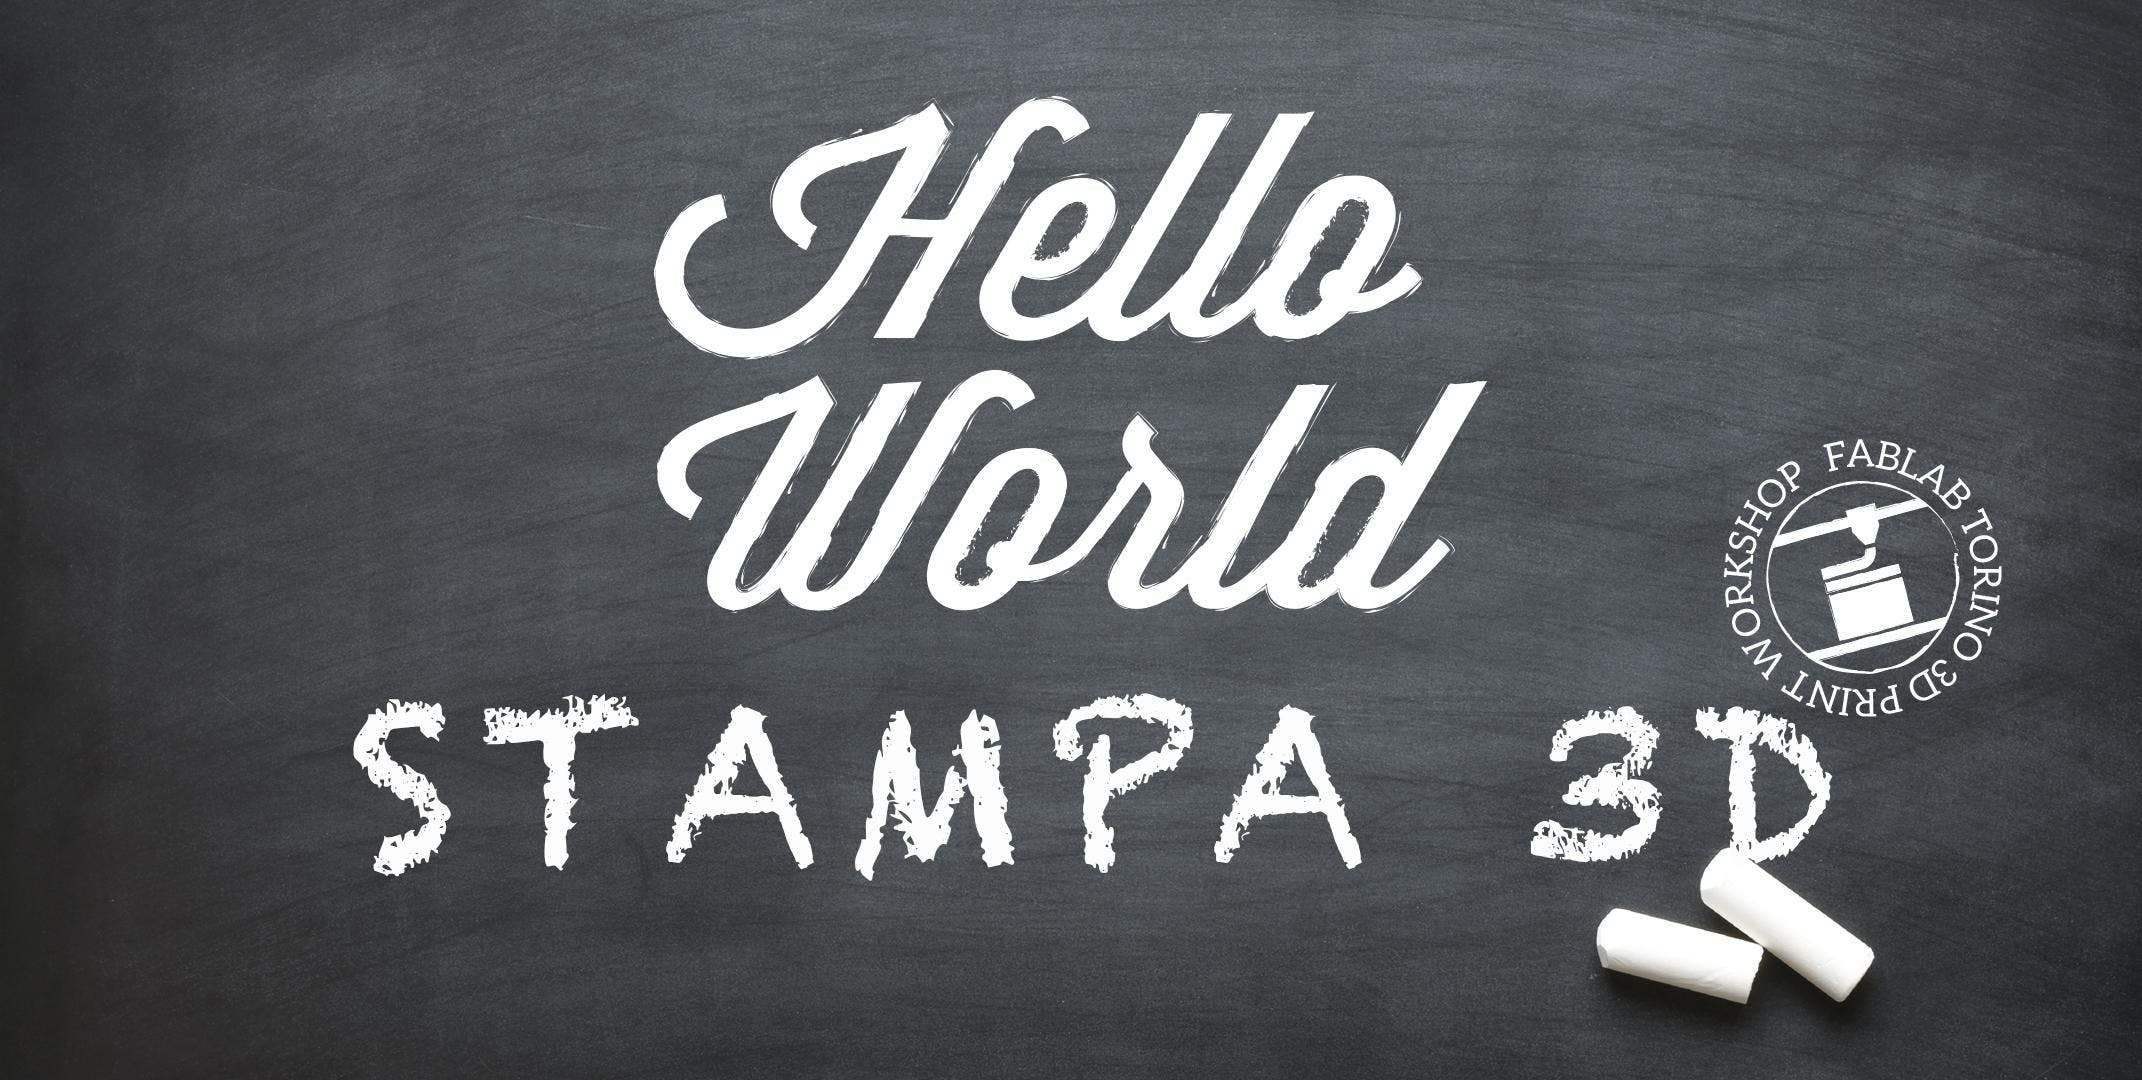 Hello World Stampa 3D!